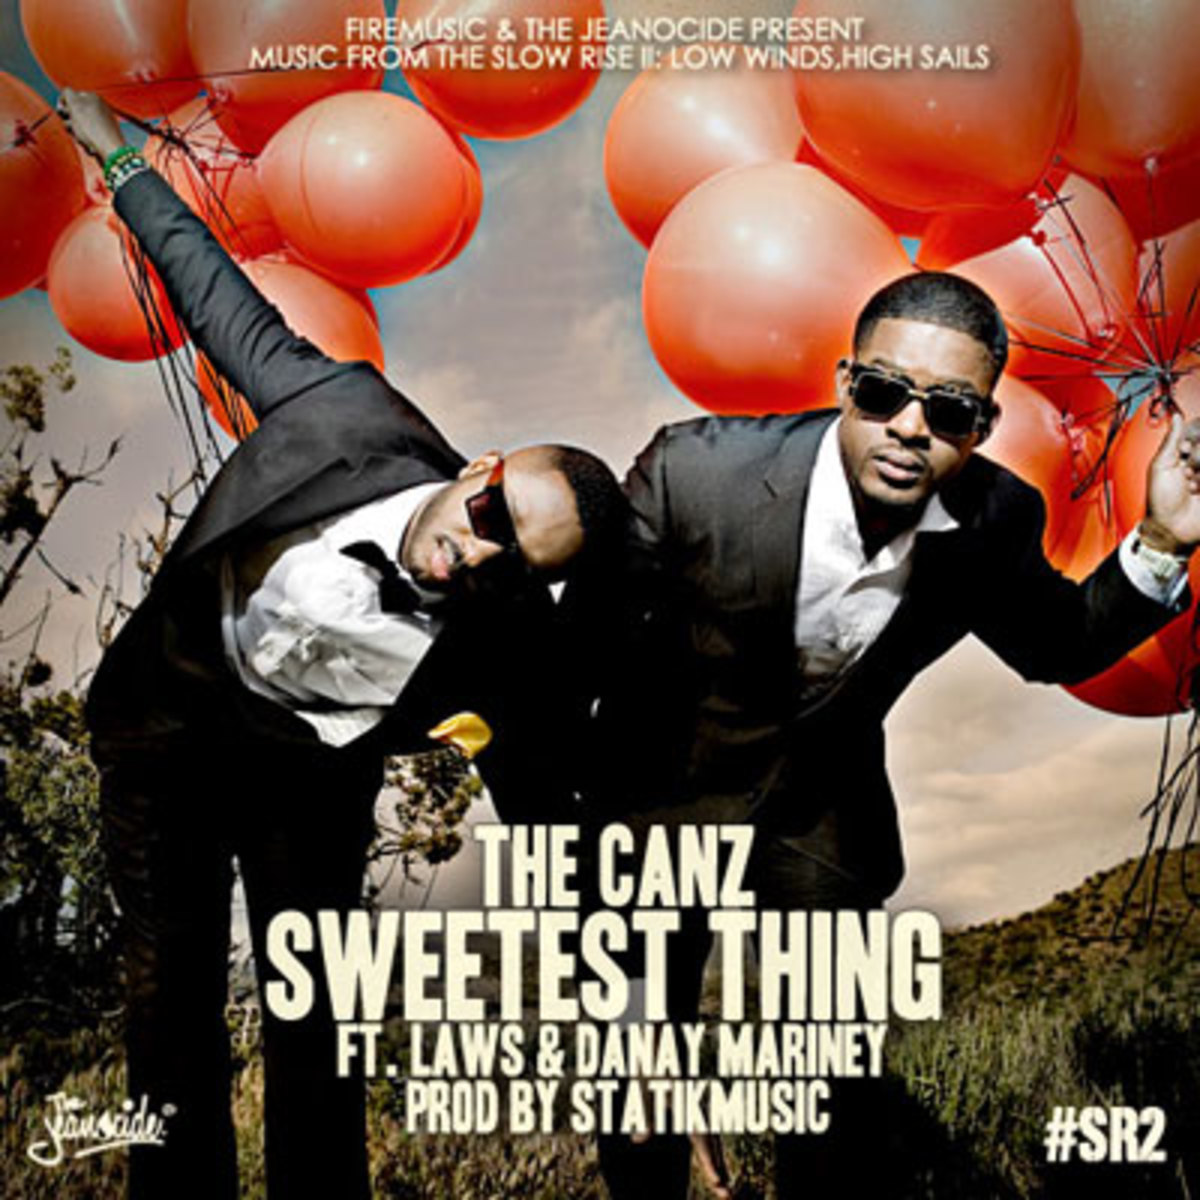 thecanz-sweetestthing.jpg